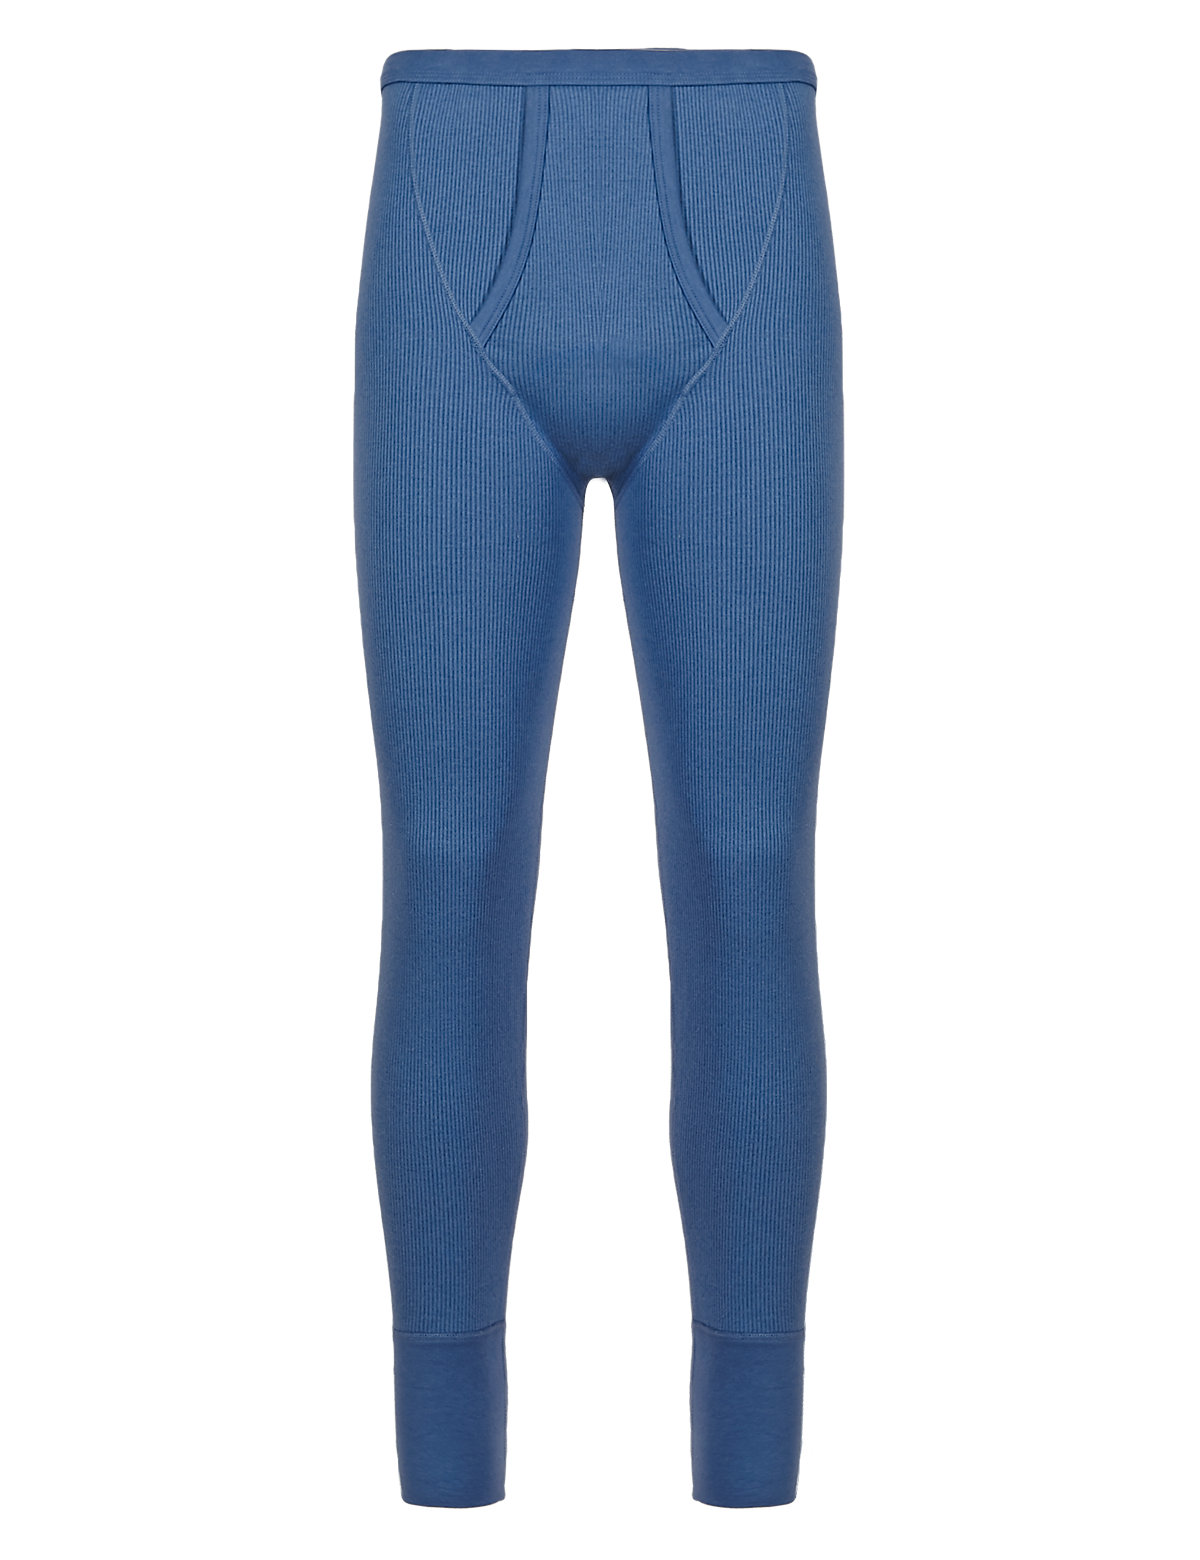 Marks & Spencer Blue Cotton Rich Thermal Long Pants